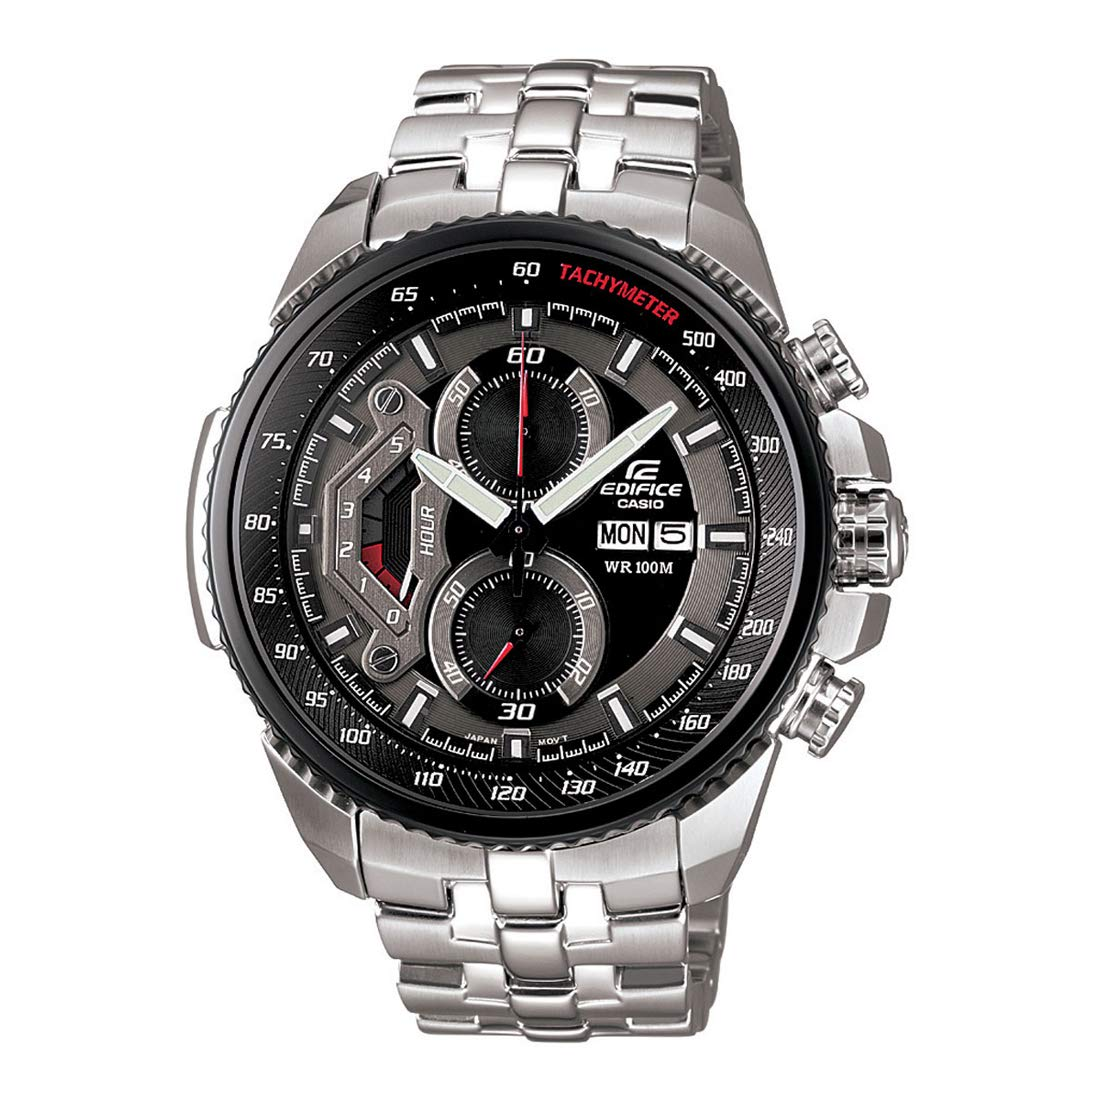 2e3fe54cac2 Buy Casio Edifice Tachymeter Chronograph Black Dial Men s Watch - EF-558D-1AVDF  (ED436) Online at Low Prices in India - Amazon.in